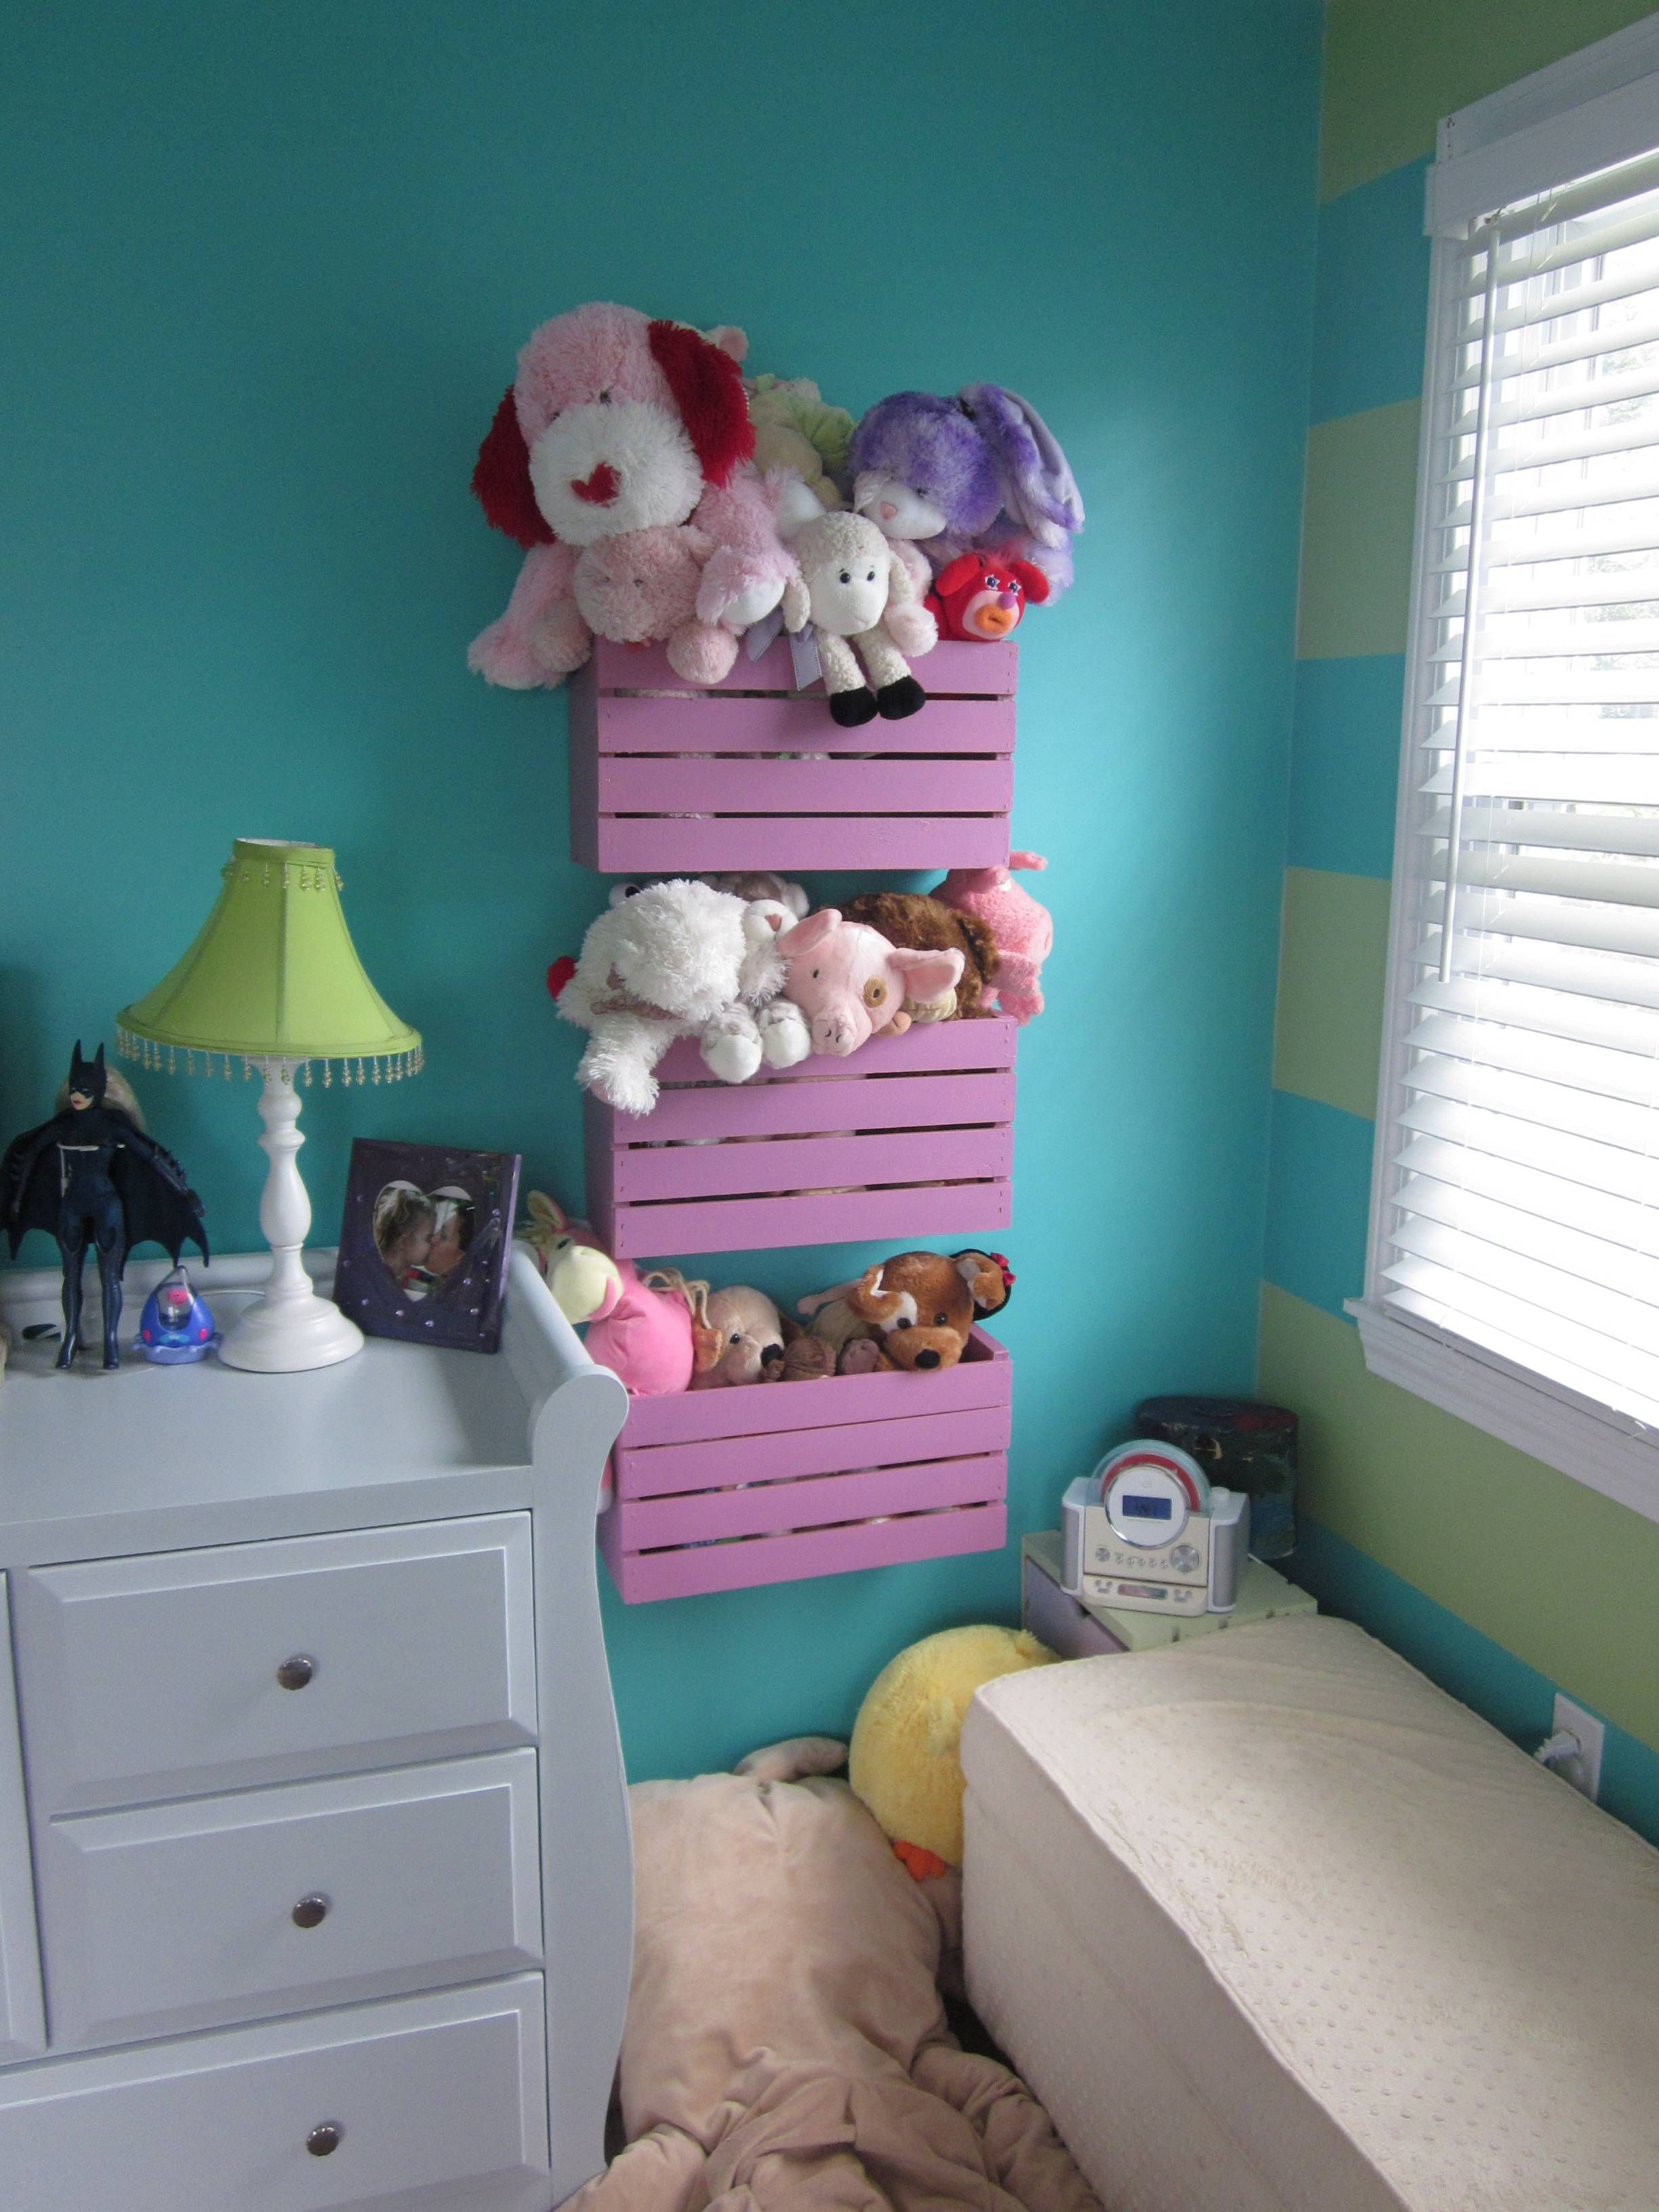 20 Creative Diy Ways To Organize And Store Stuffed Animal Toys Organizing Stuffed Animals Storing Stuffed Animals Cowgirl Room